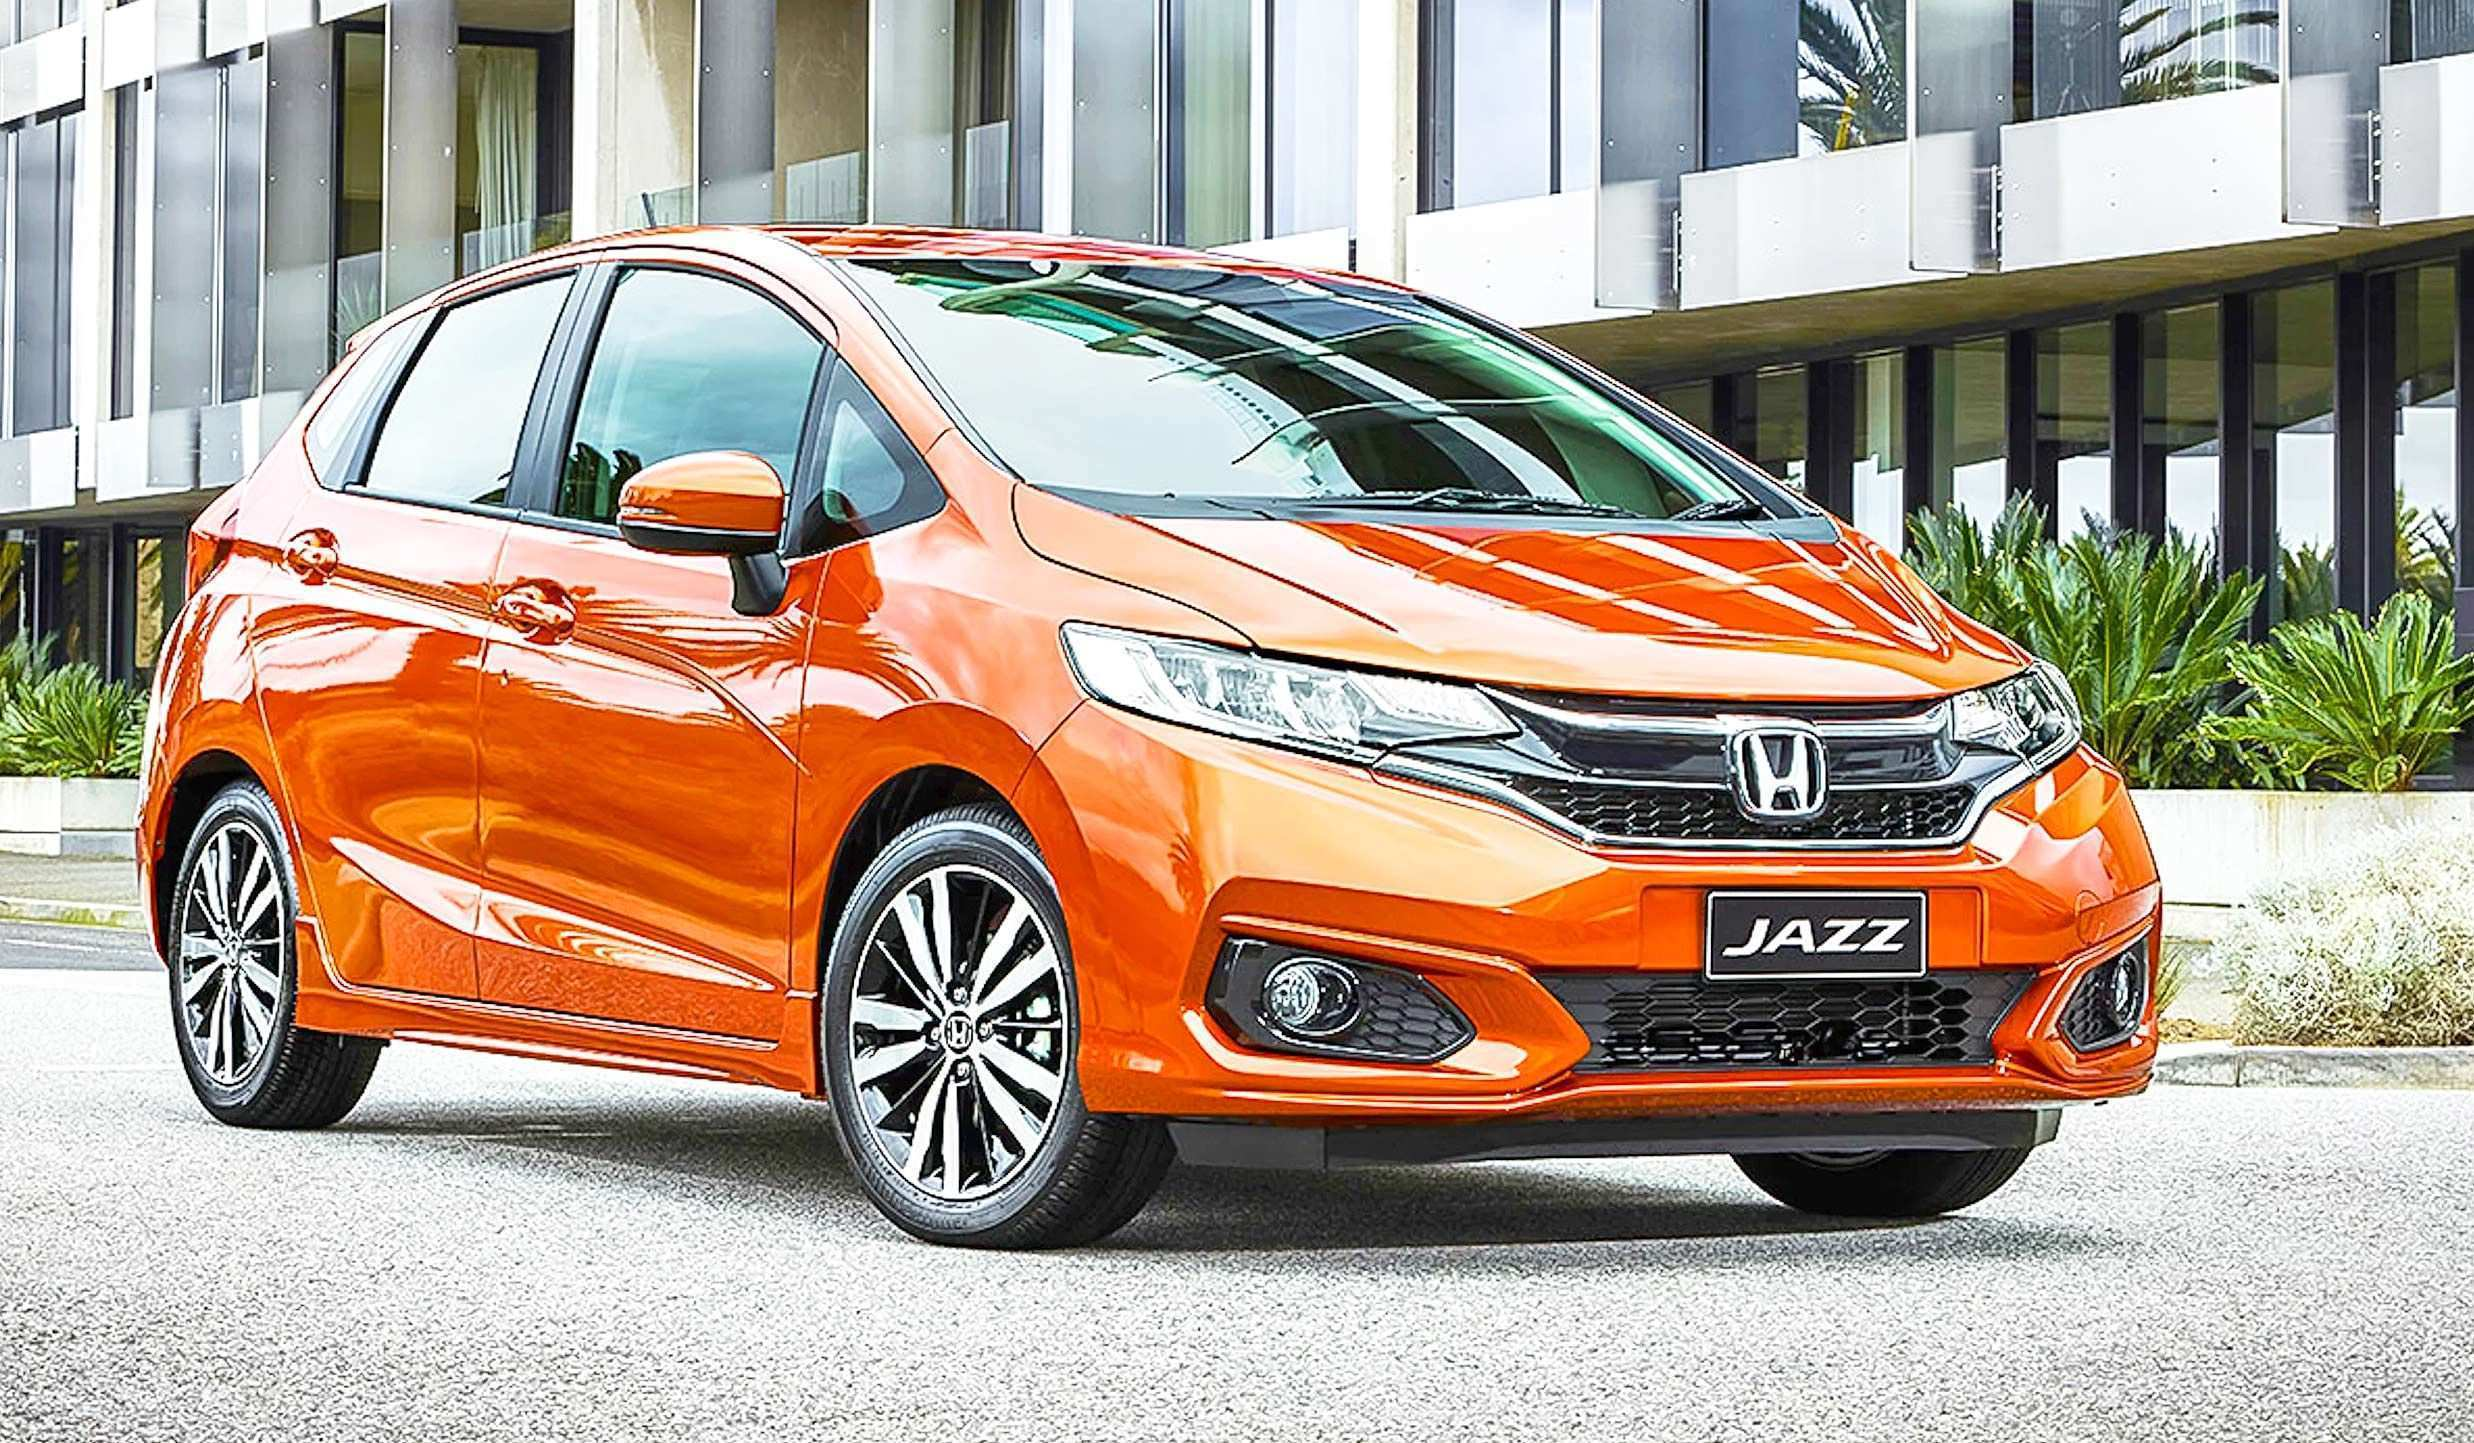 79 New 2019 Honda Jazz Model for 2019 Honda Jazz